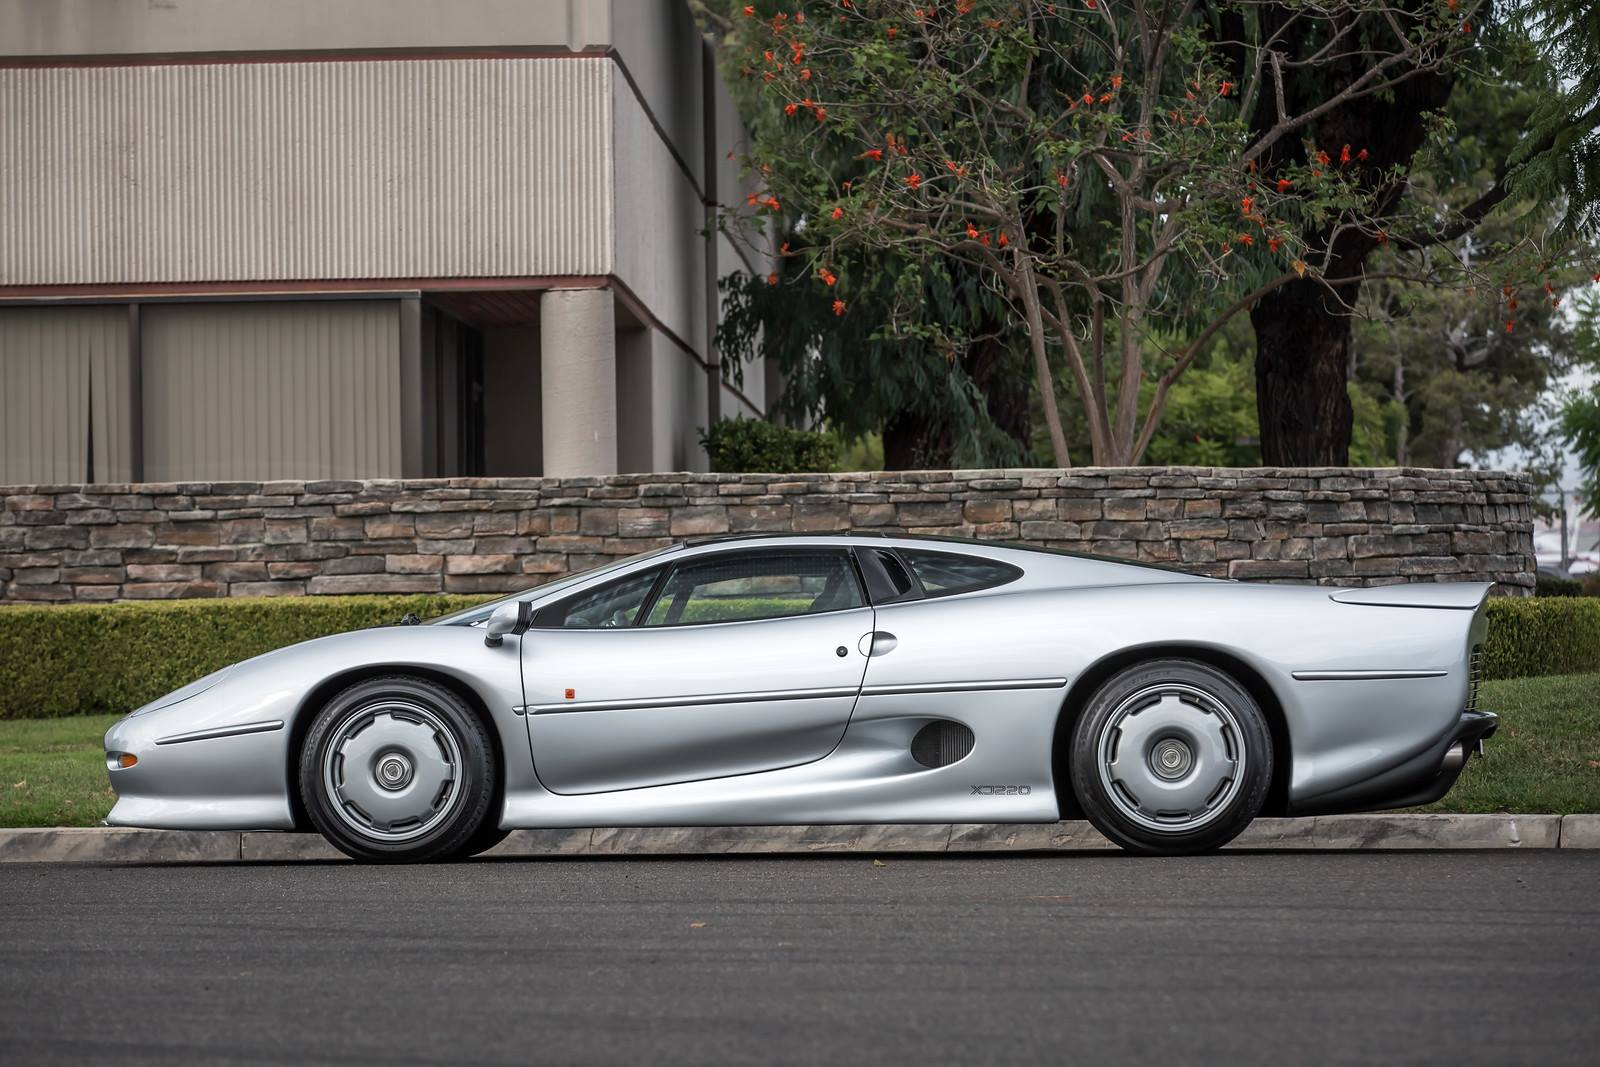 Rare Left Hand Drive Jaguar XJ220 For Sale in the US ...